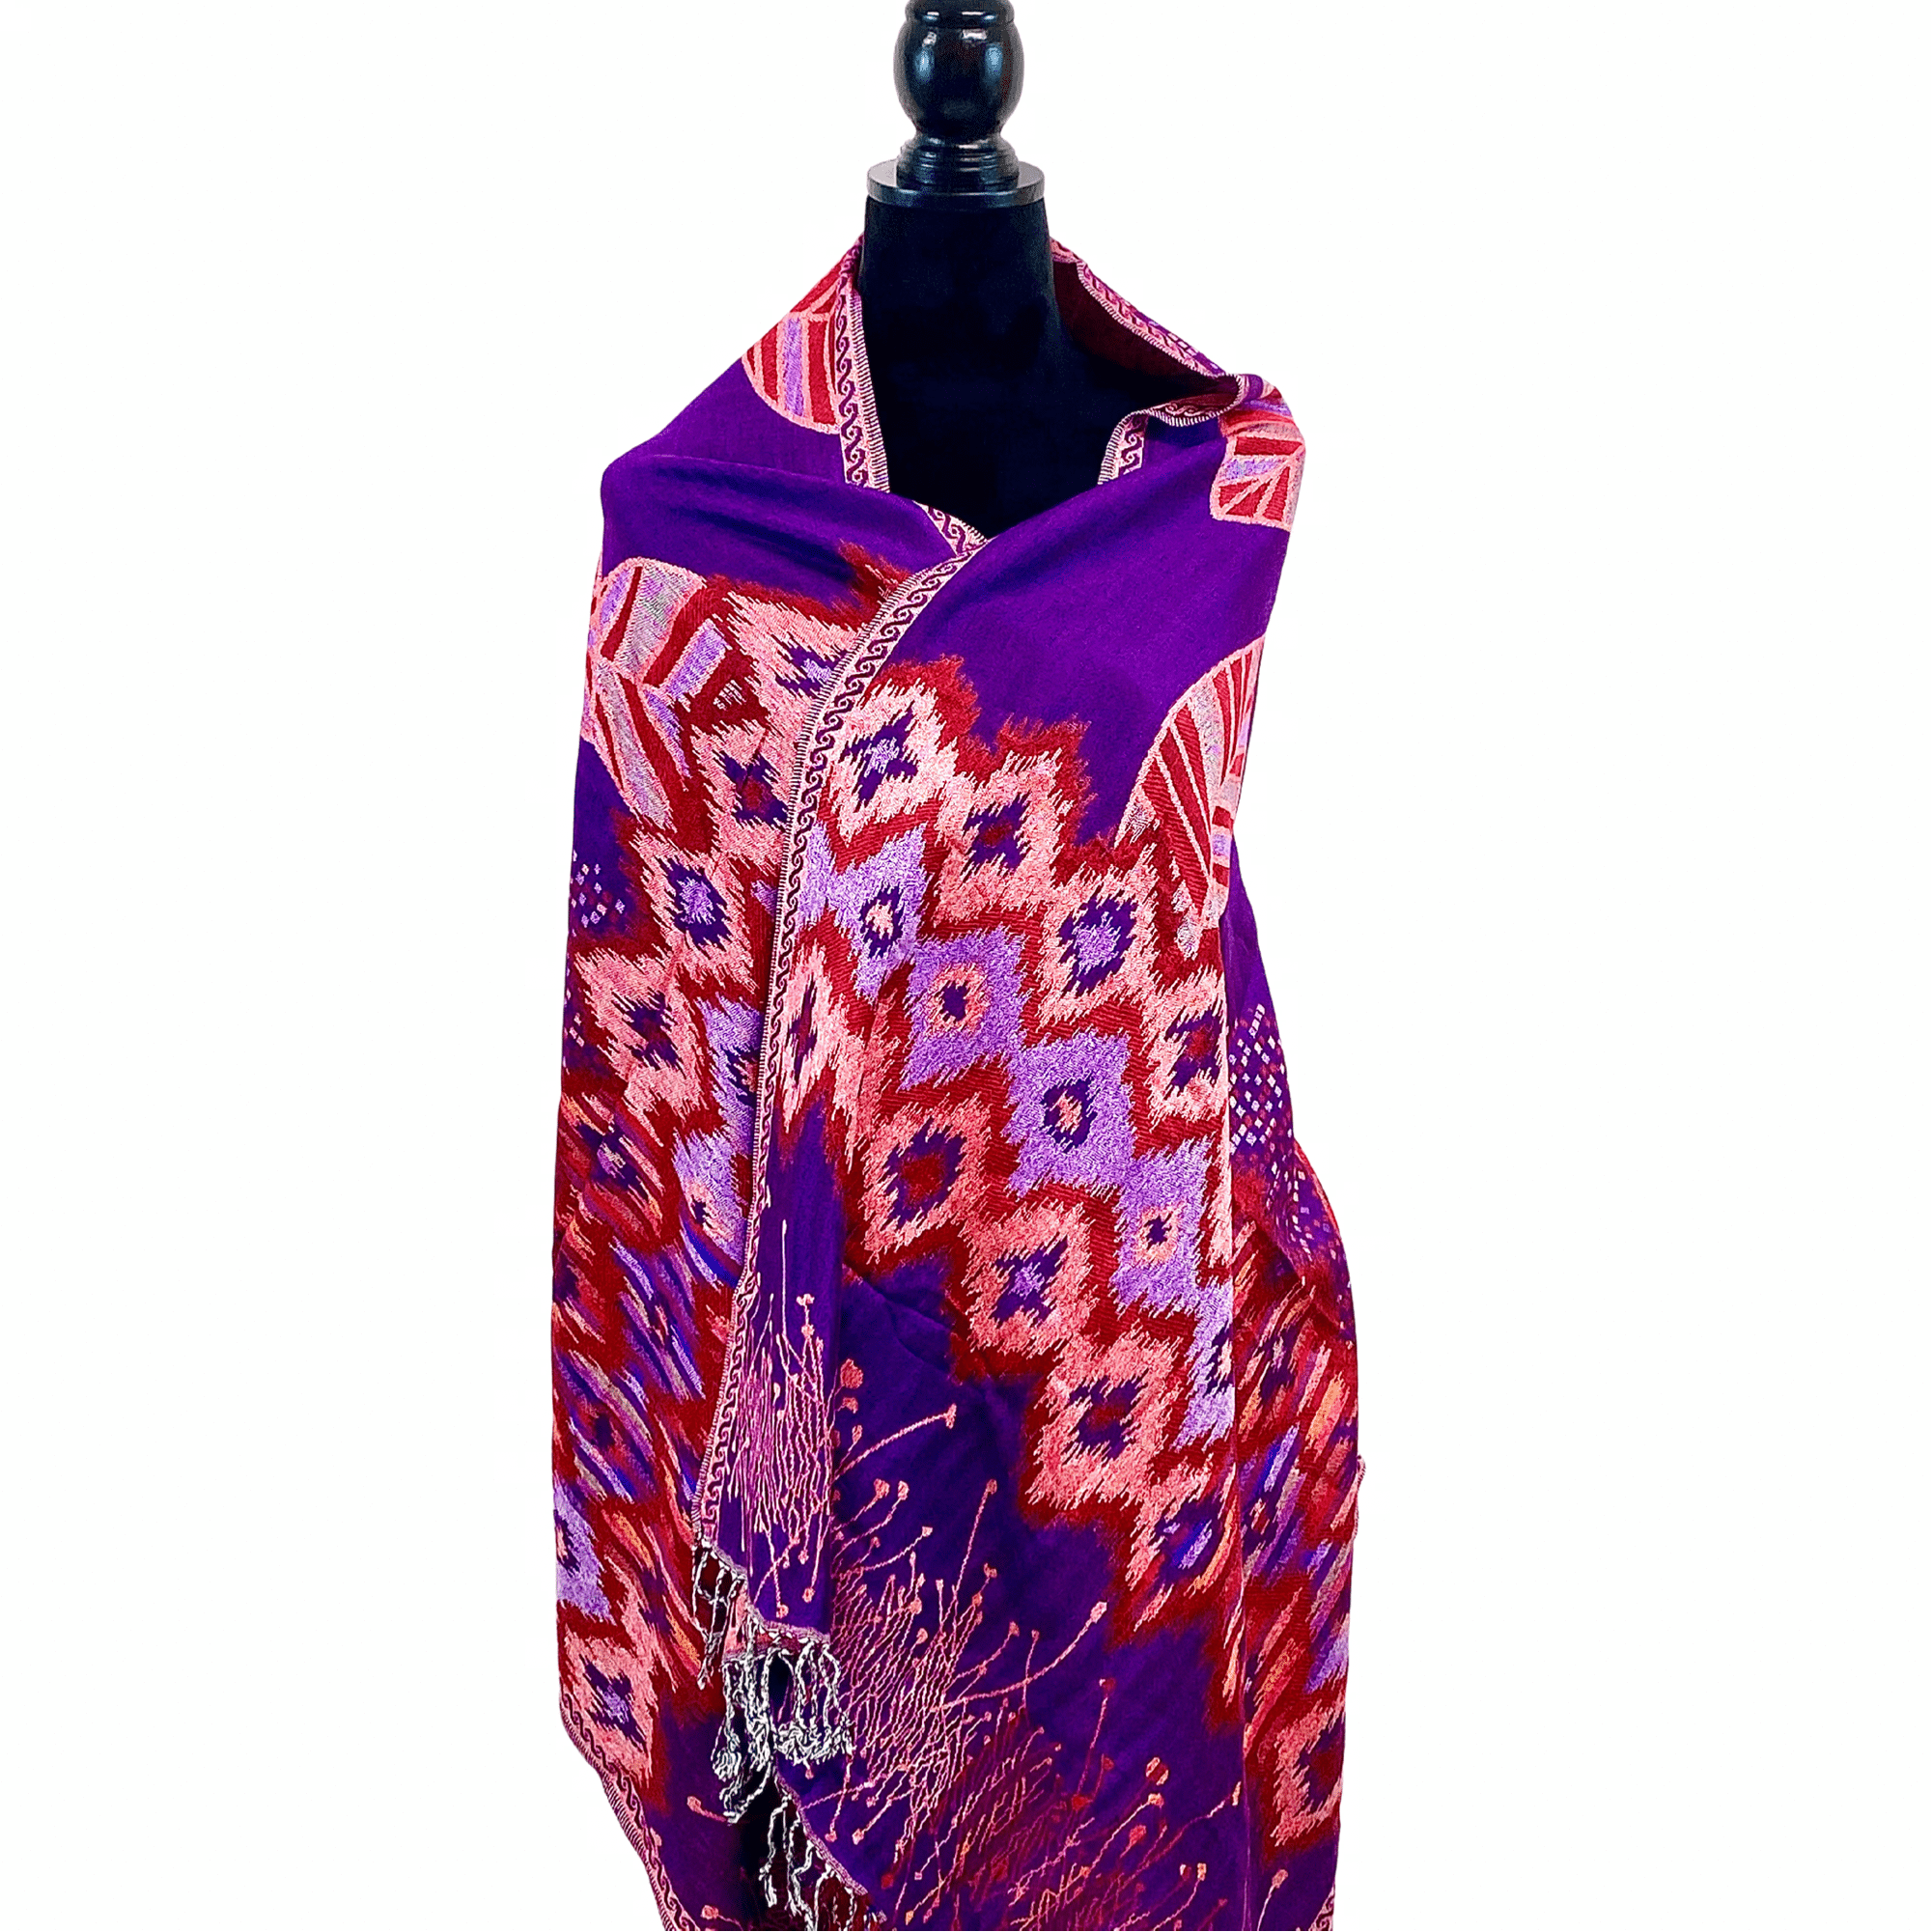 WyohFlowers Women's Clothing Orchid Purple Handwoven Cotton Shawl